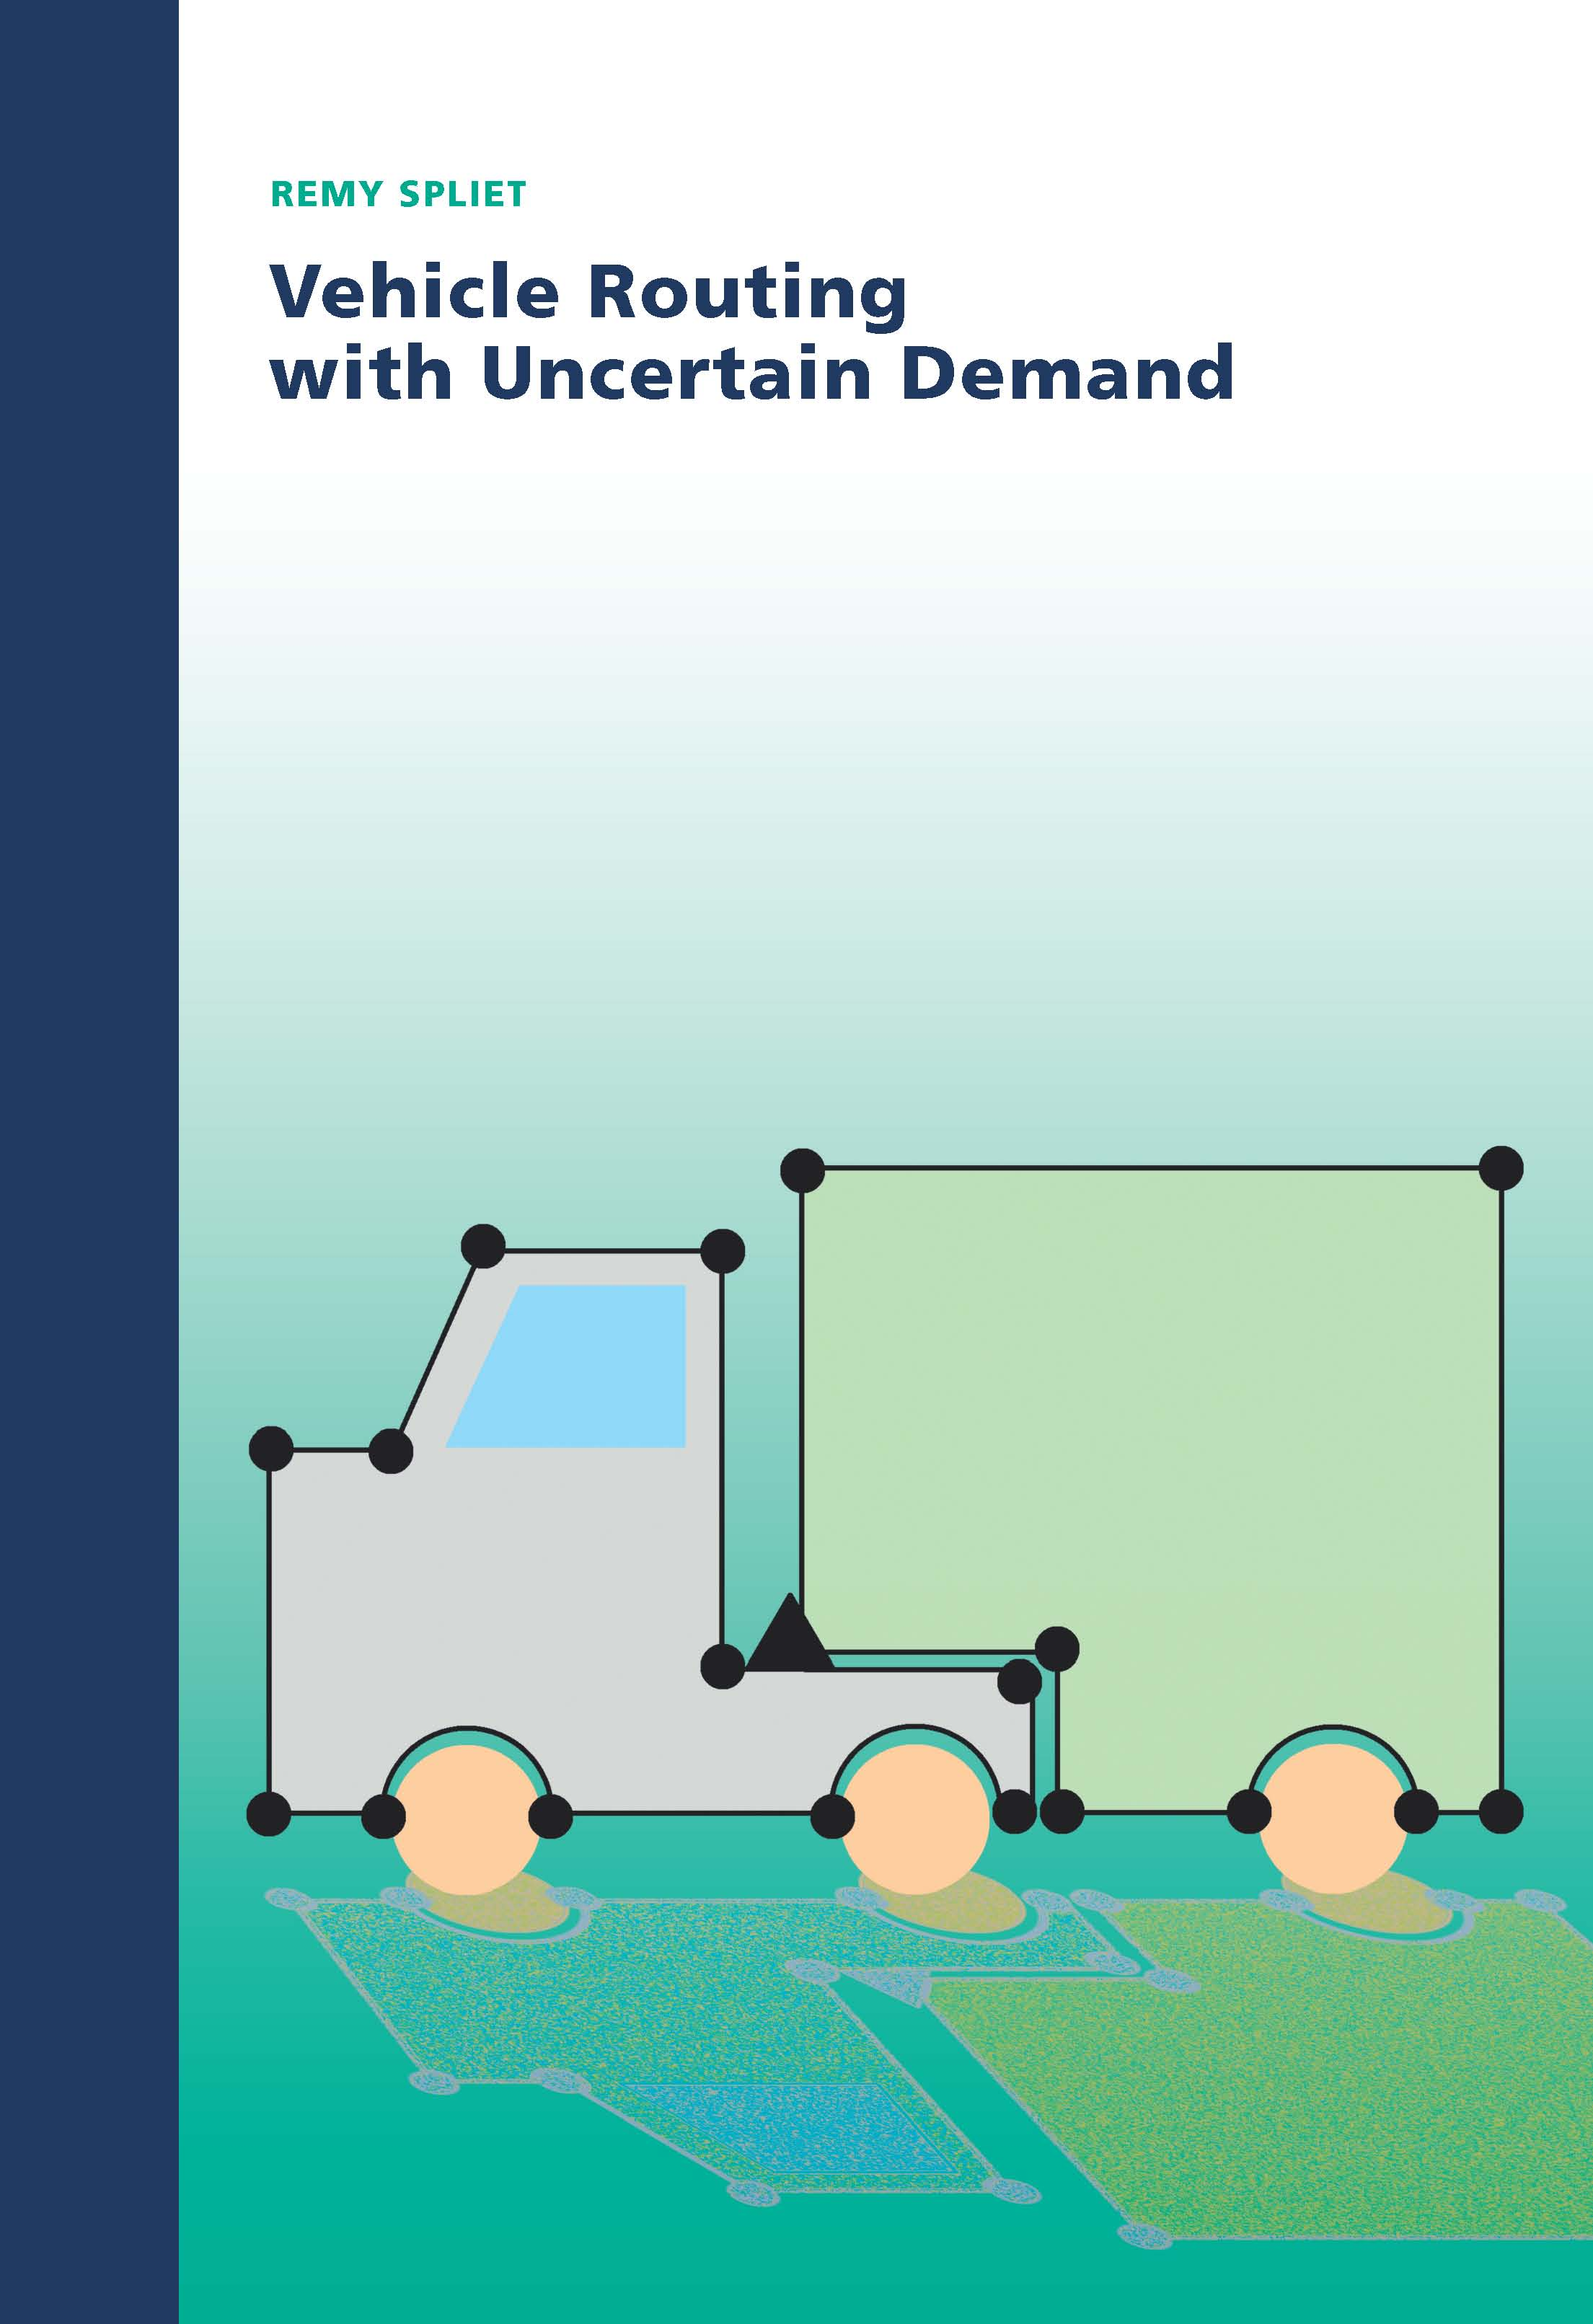 Vehicle Routing with Uncertain Demand